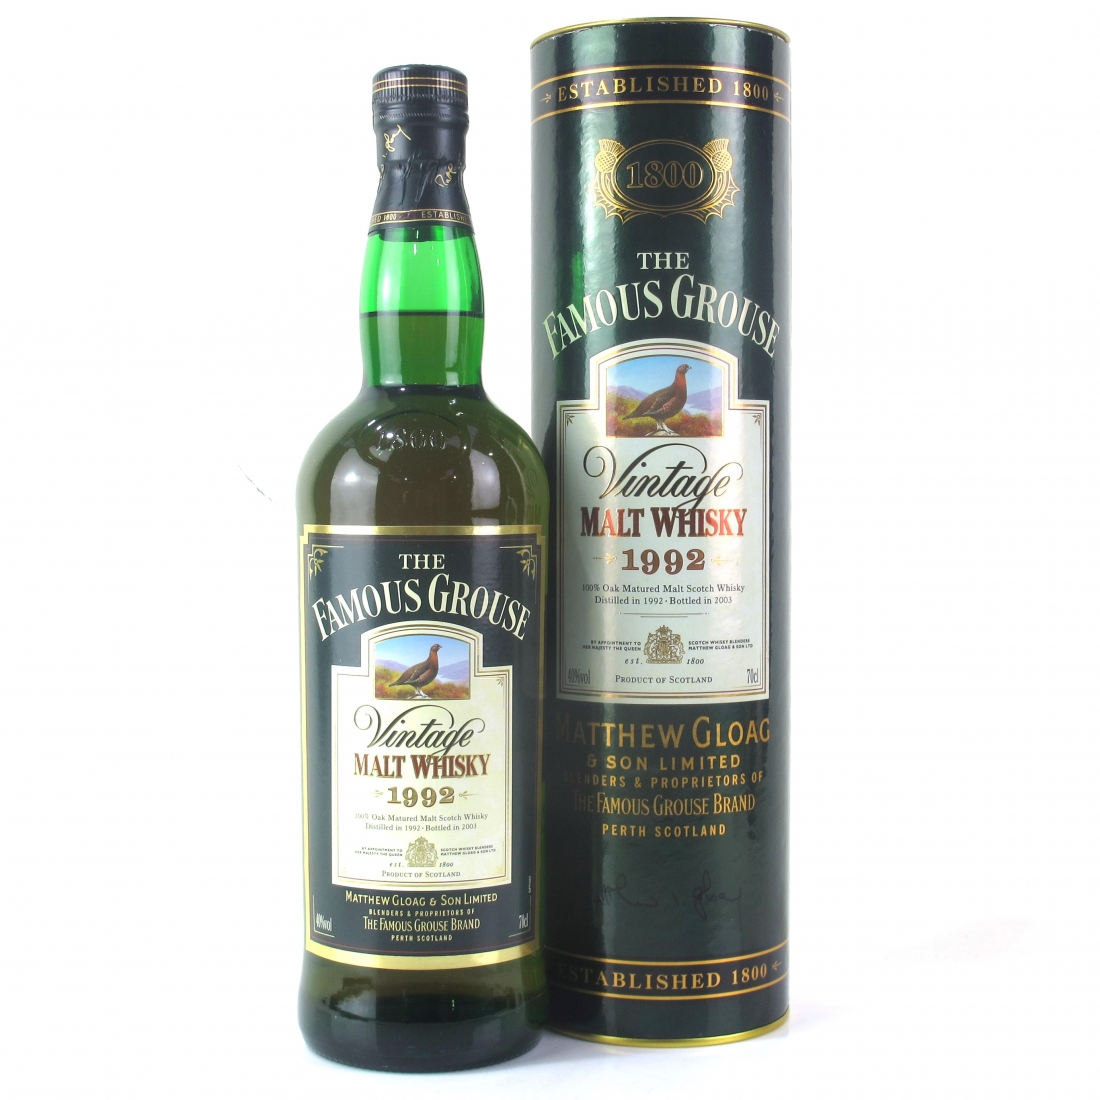 Famous Grouse 1992 Vintage Malt